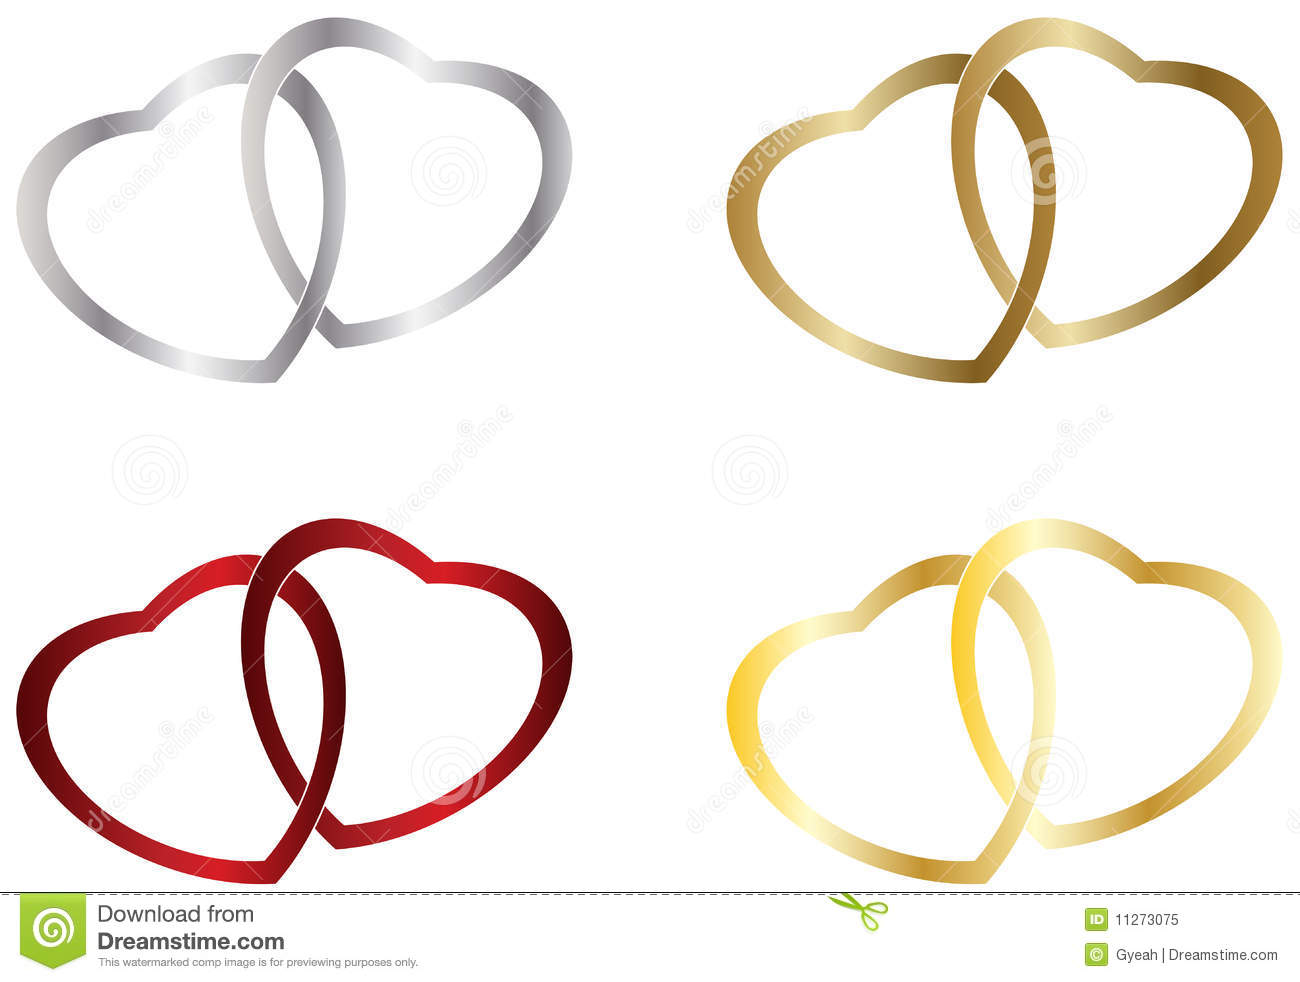 Free Wedding Heart Clip Art Wedding Heart Rings Royalty Free Stock